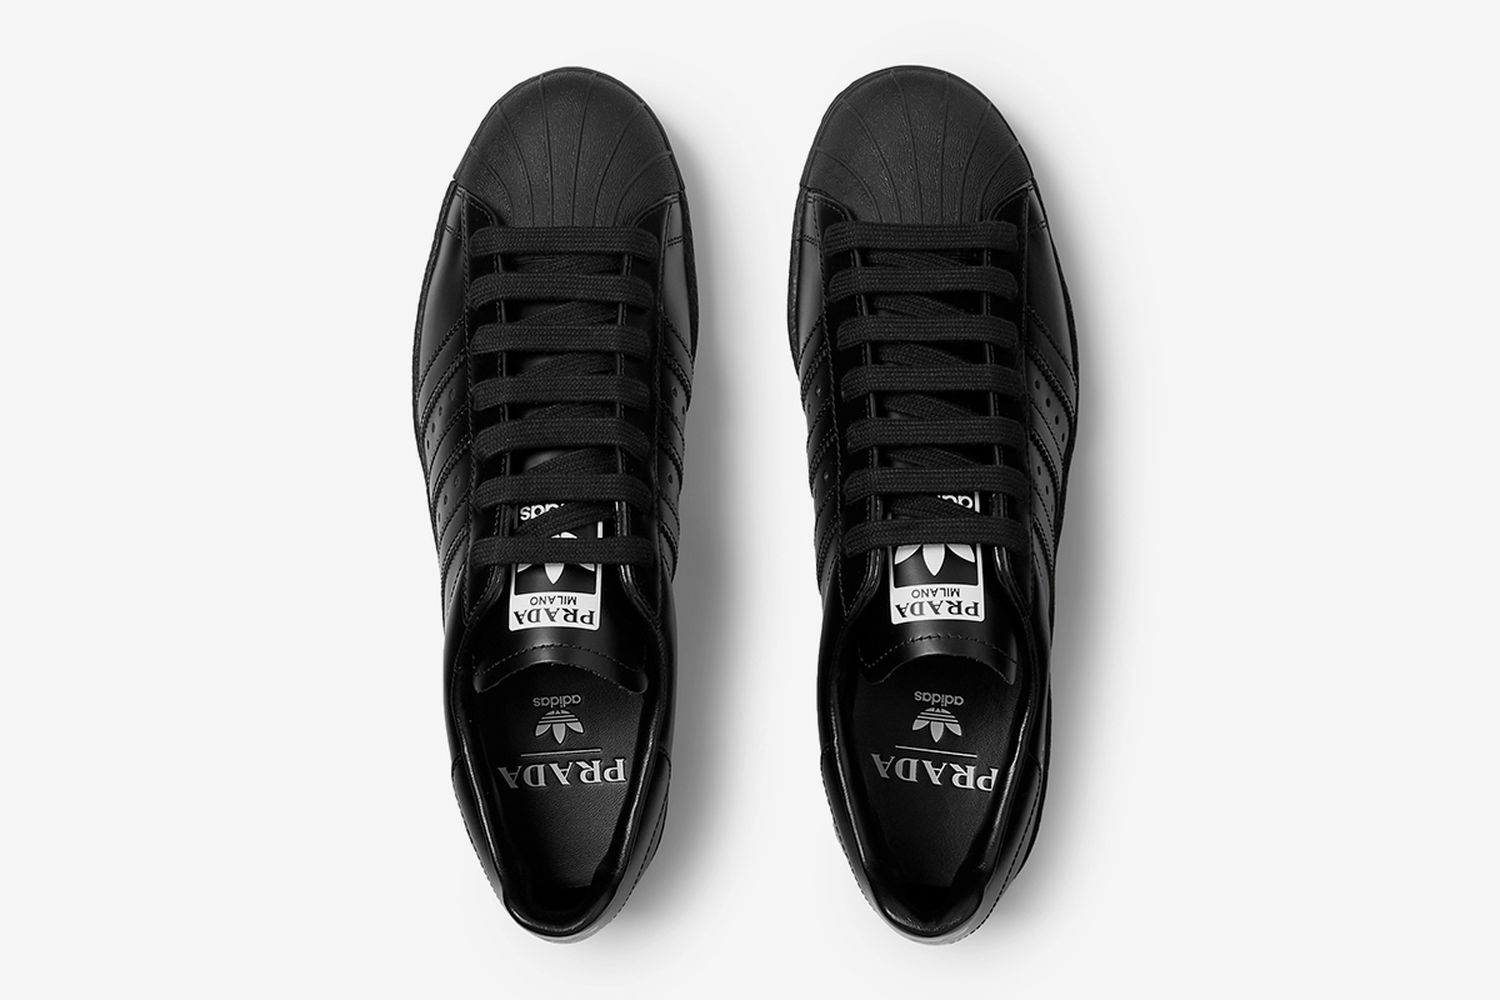 Superstar 450 Leather Sneakers